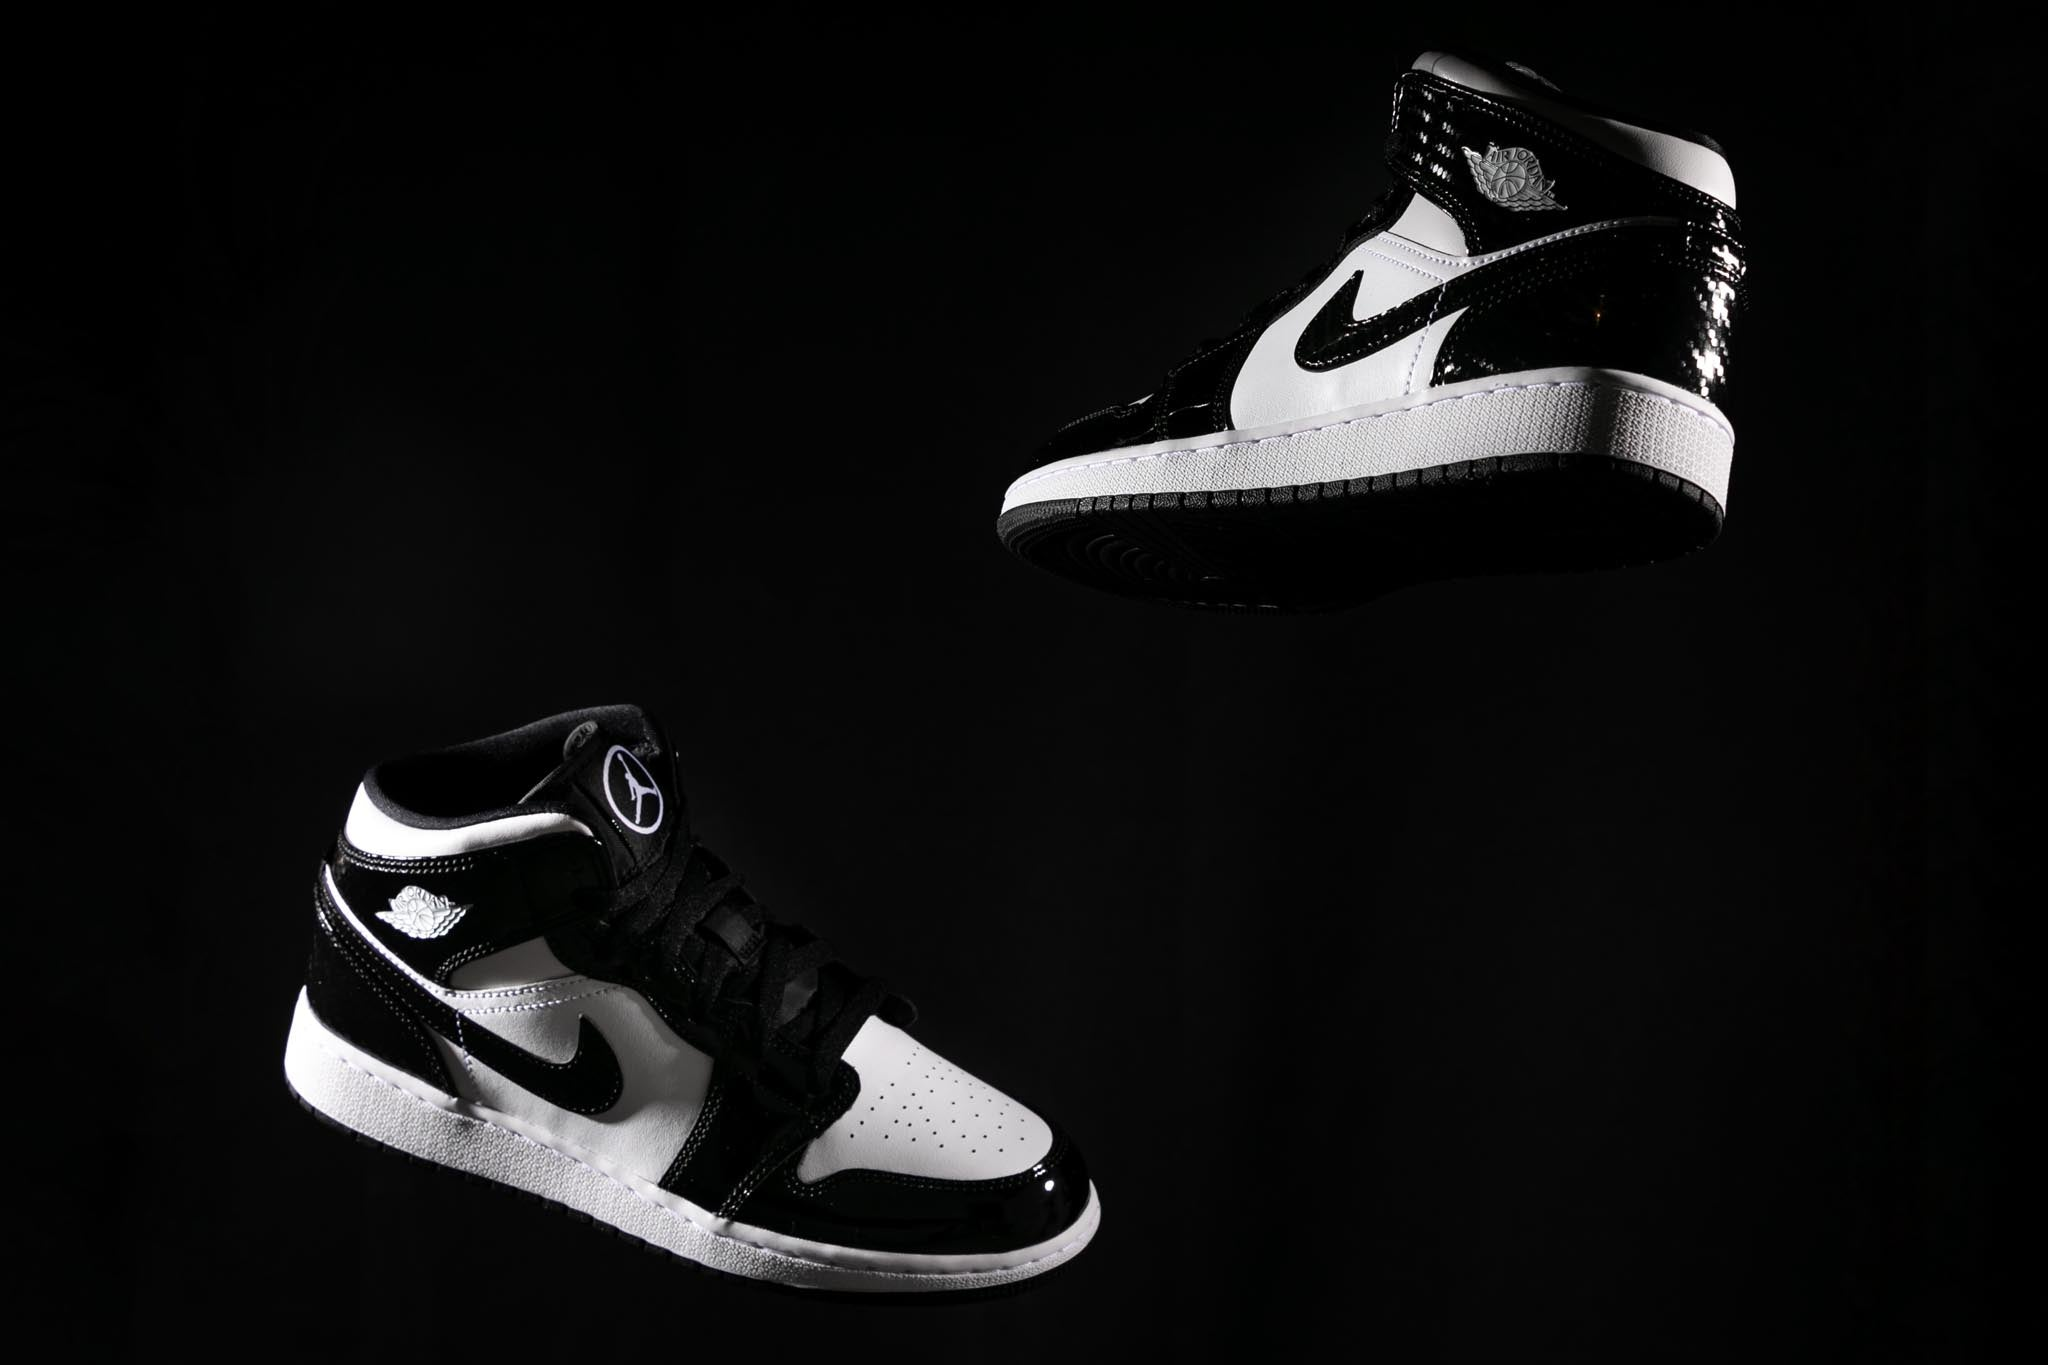 Air Jordan 1 Mid SE 'Carbon' All-Star Weekend ASW - 2